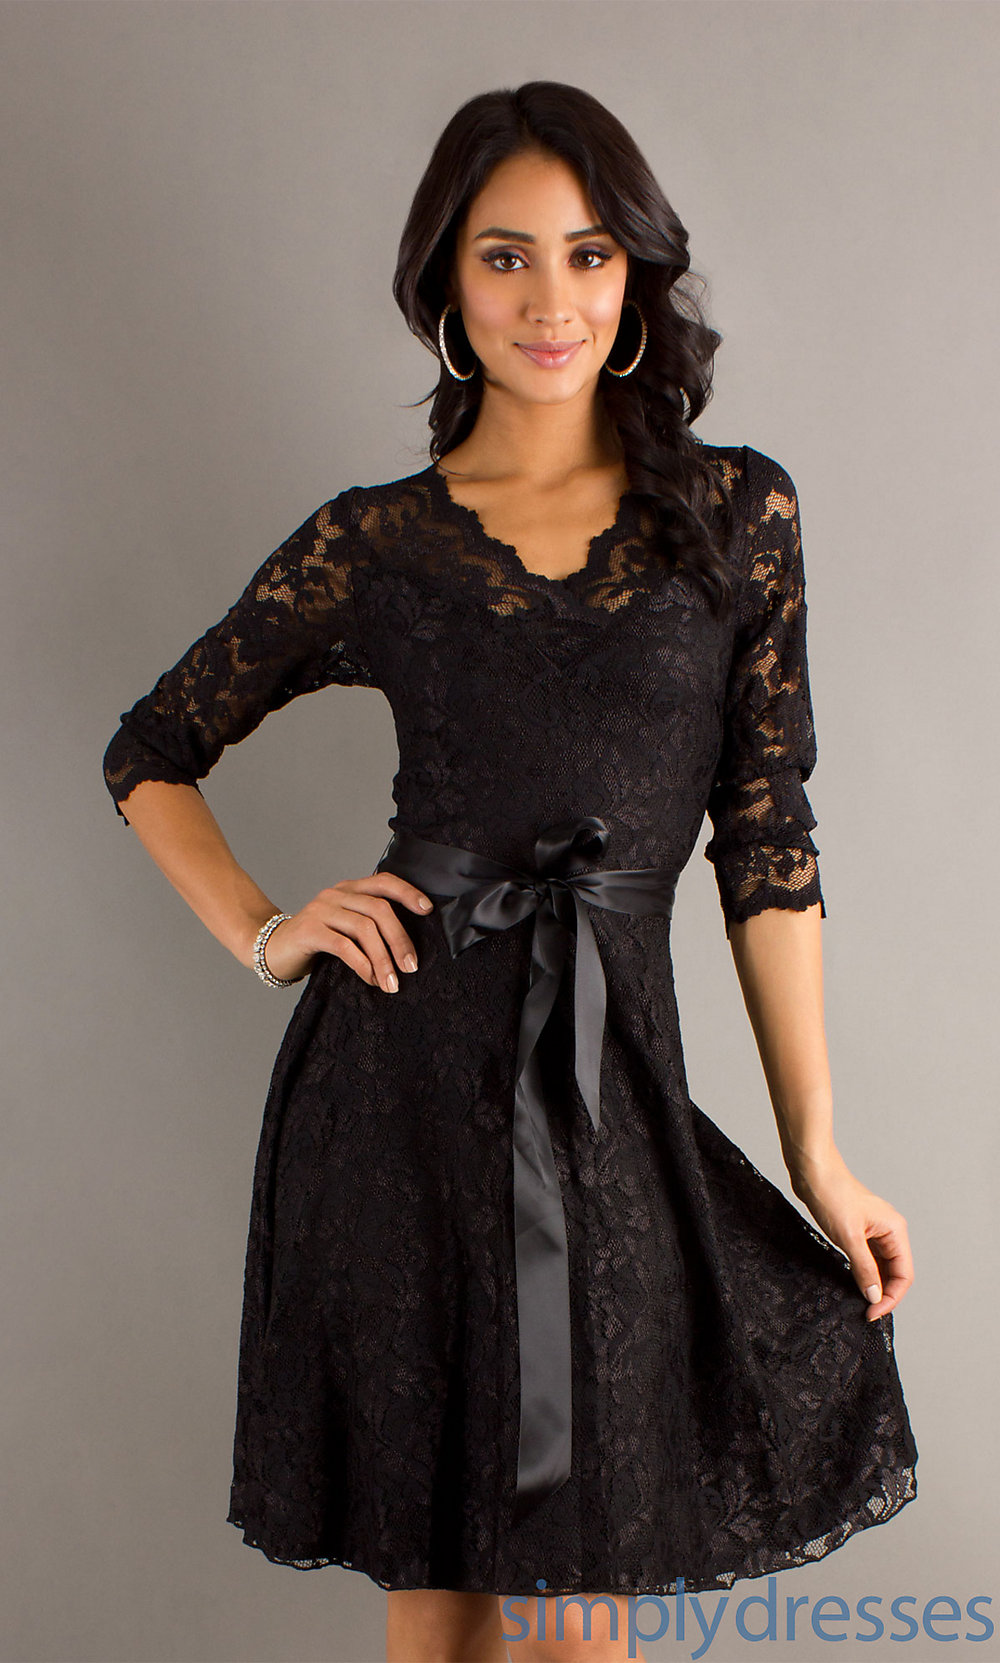 Black Dresses For Juniors Kohls  Shopping Guide We Are Number One  Where To Buy Cute Clothes